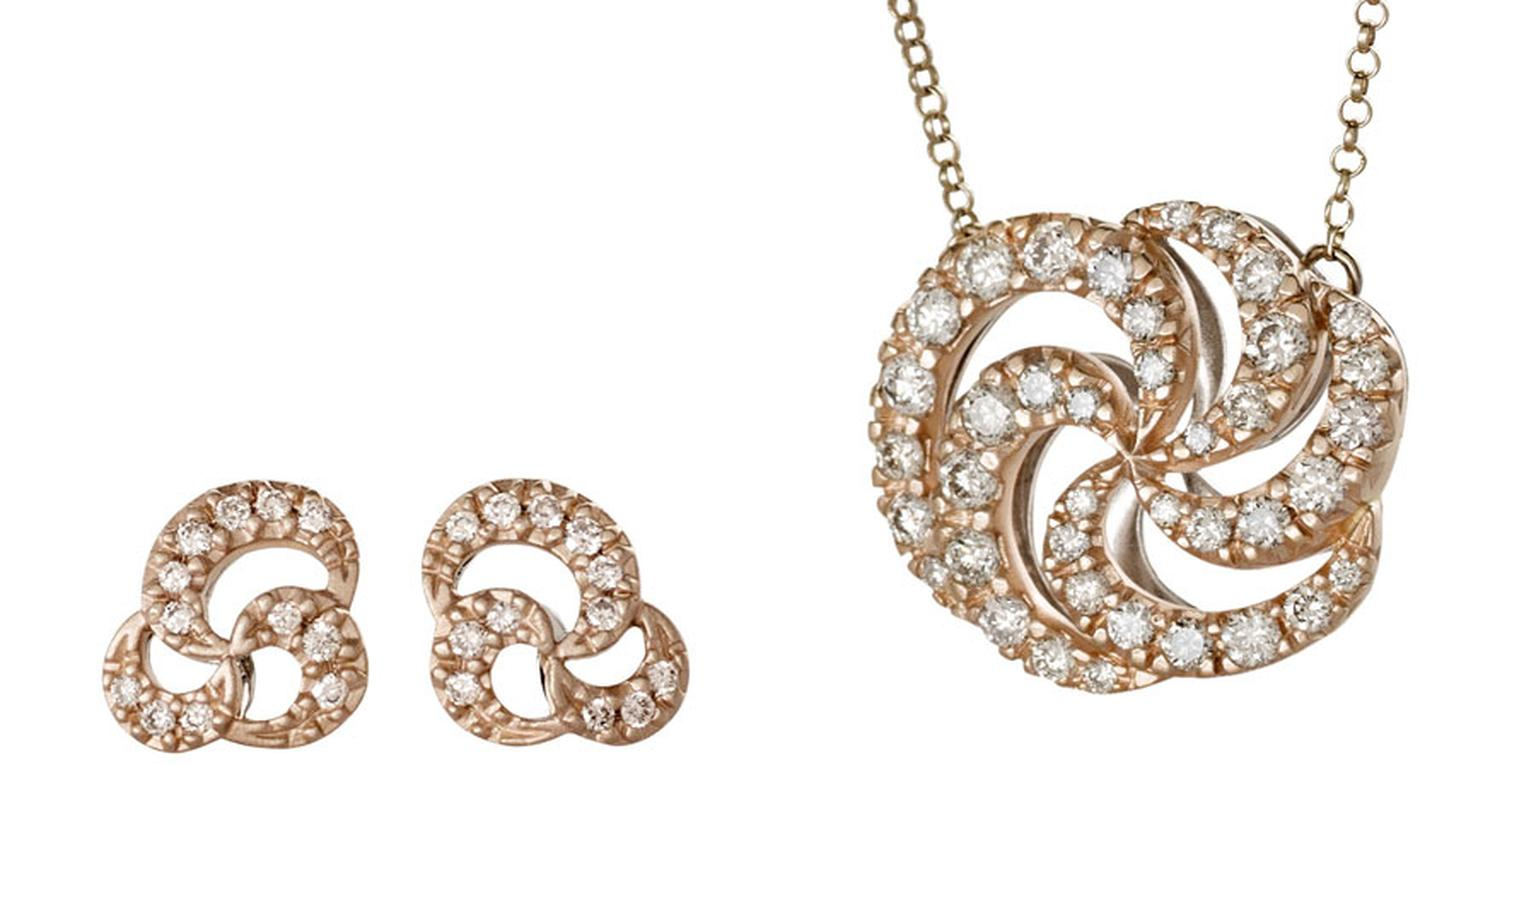 H-Stern-Earrings-and-pendant-in-rose-gold-with-diamonds